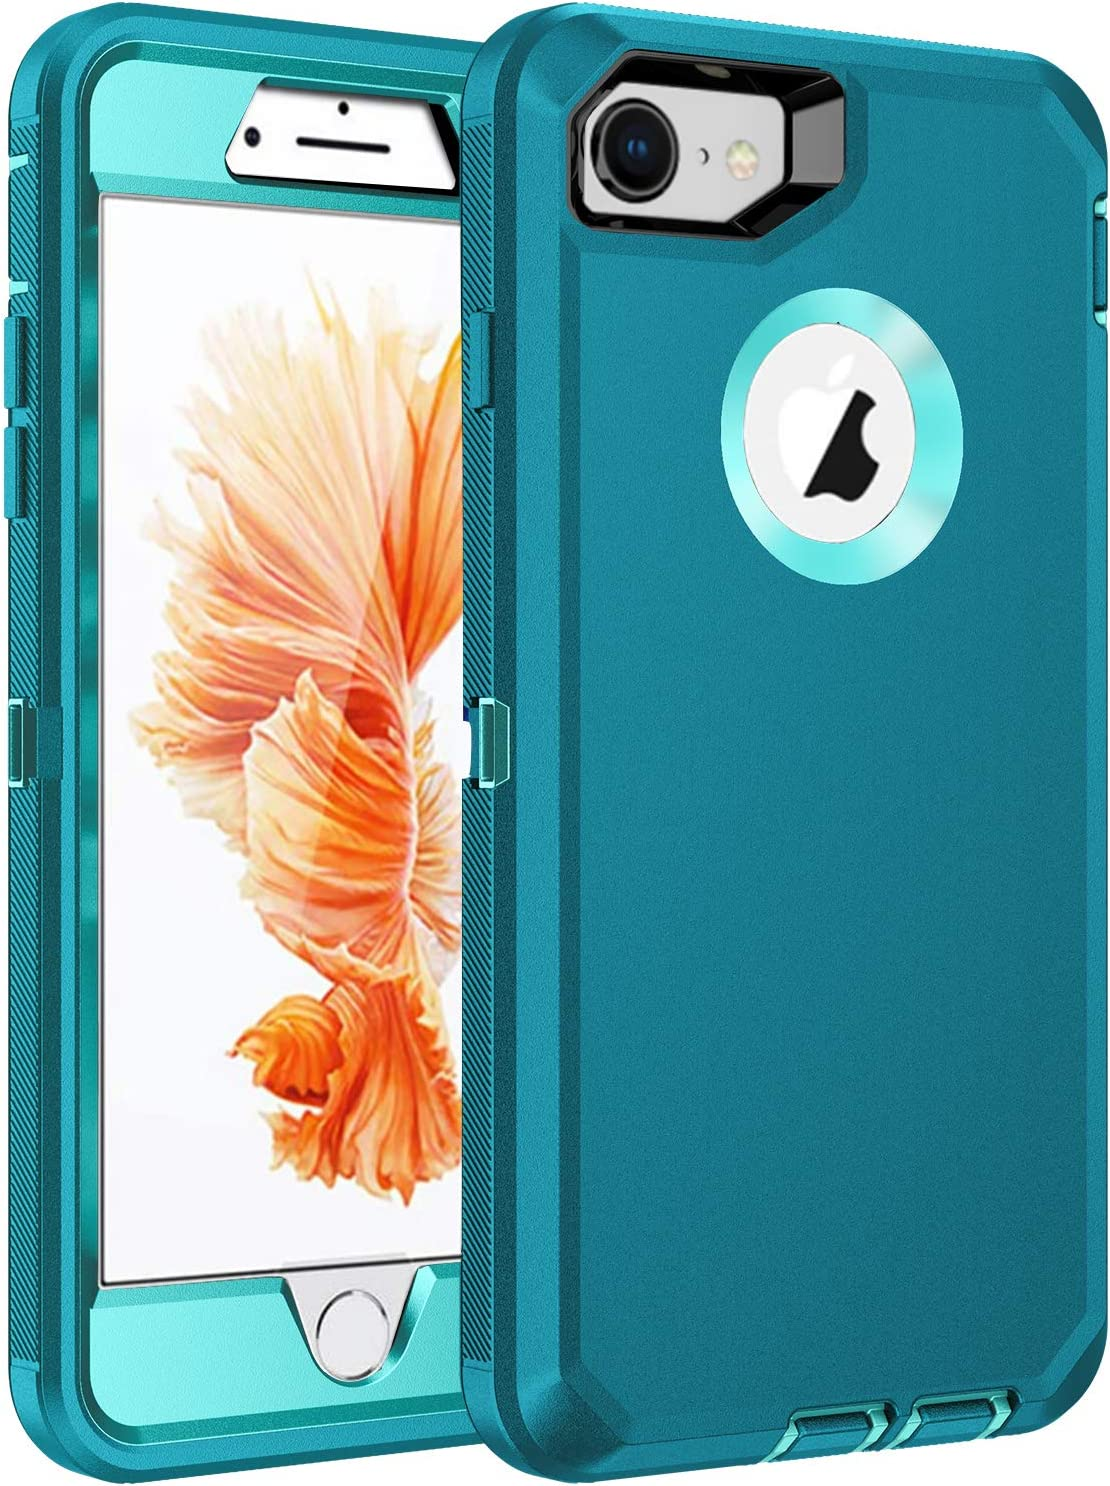 RegSun for iPhone 6s Plus Case,iPhone 6 Plus Case,Built-in Screen Protector, Shockproof 3-Layer Full Body Protection Rugged Heavy Duty High Impact Hard Cover Case for iPhone 6s Plus 5.5 inch,Blue